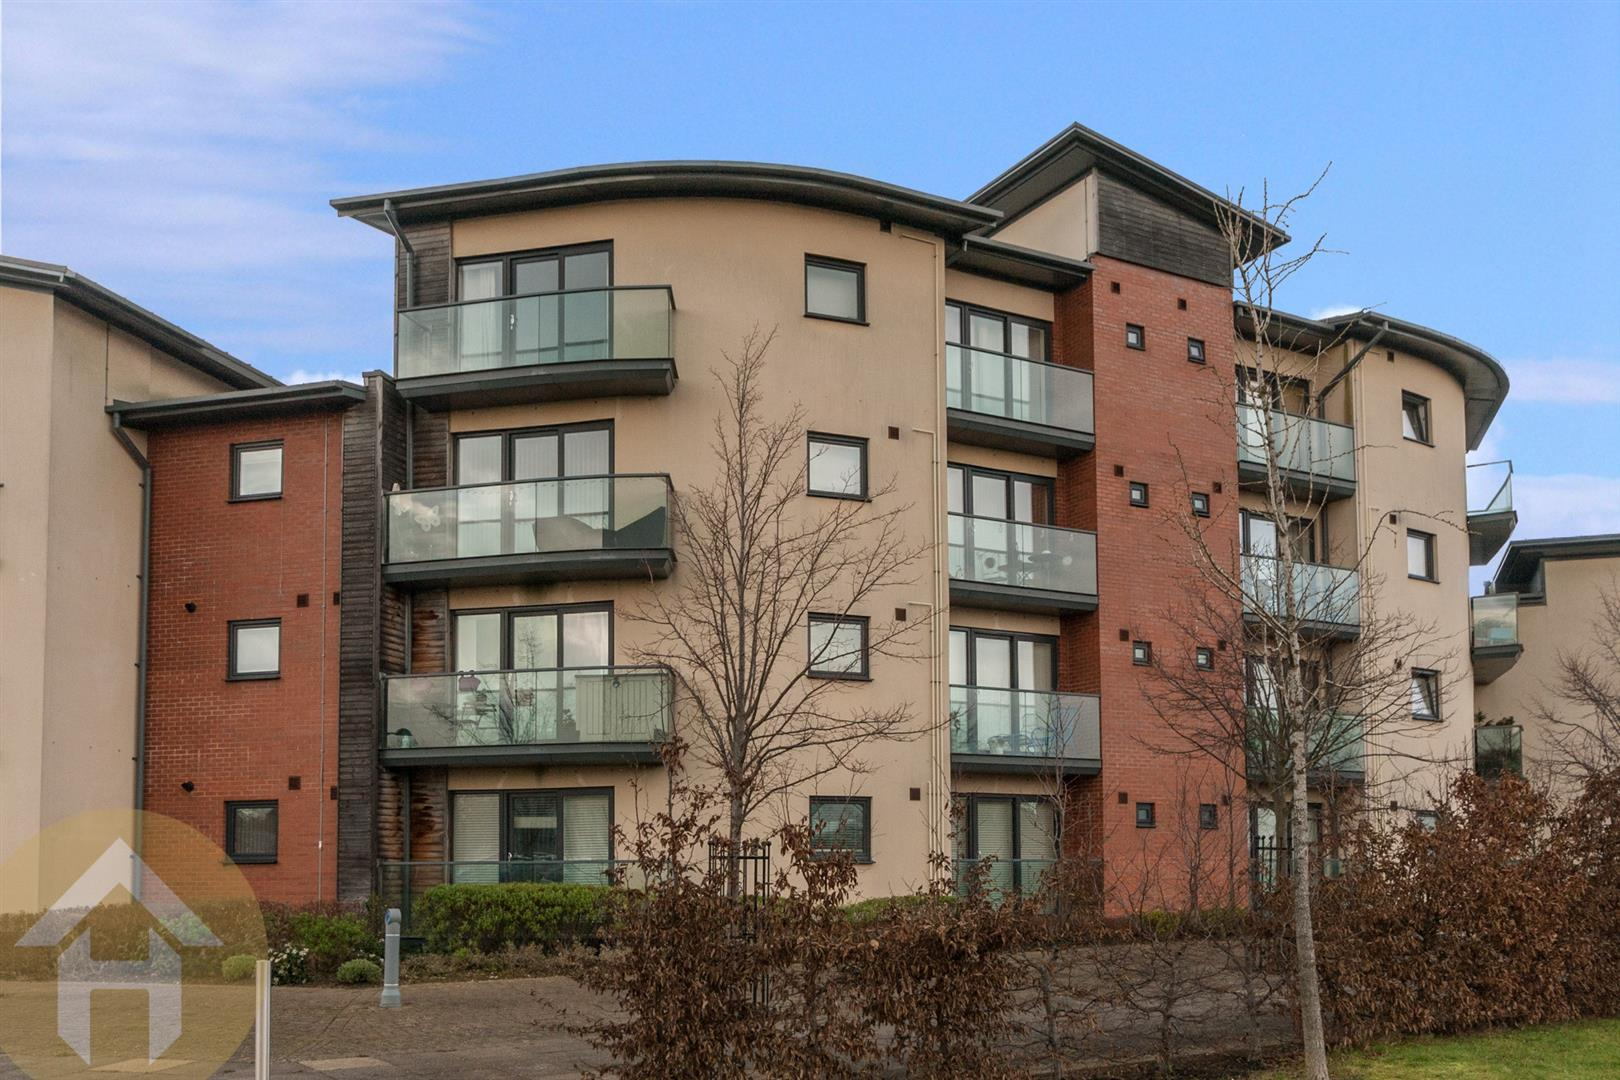 2 Bedrooms Flat for sale in Allen Close, Swindon